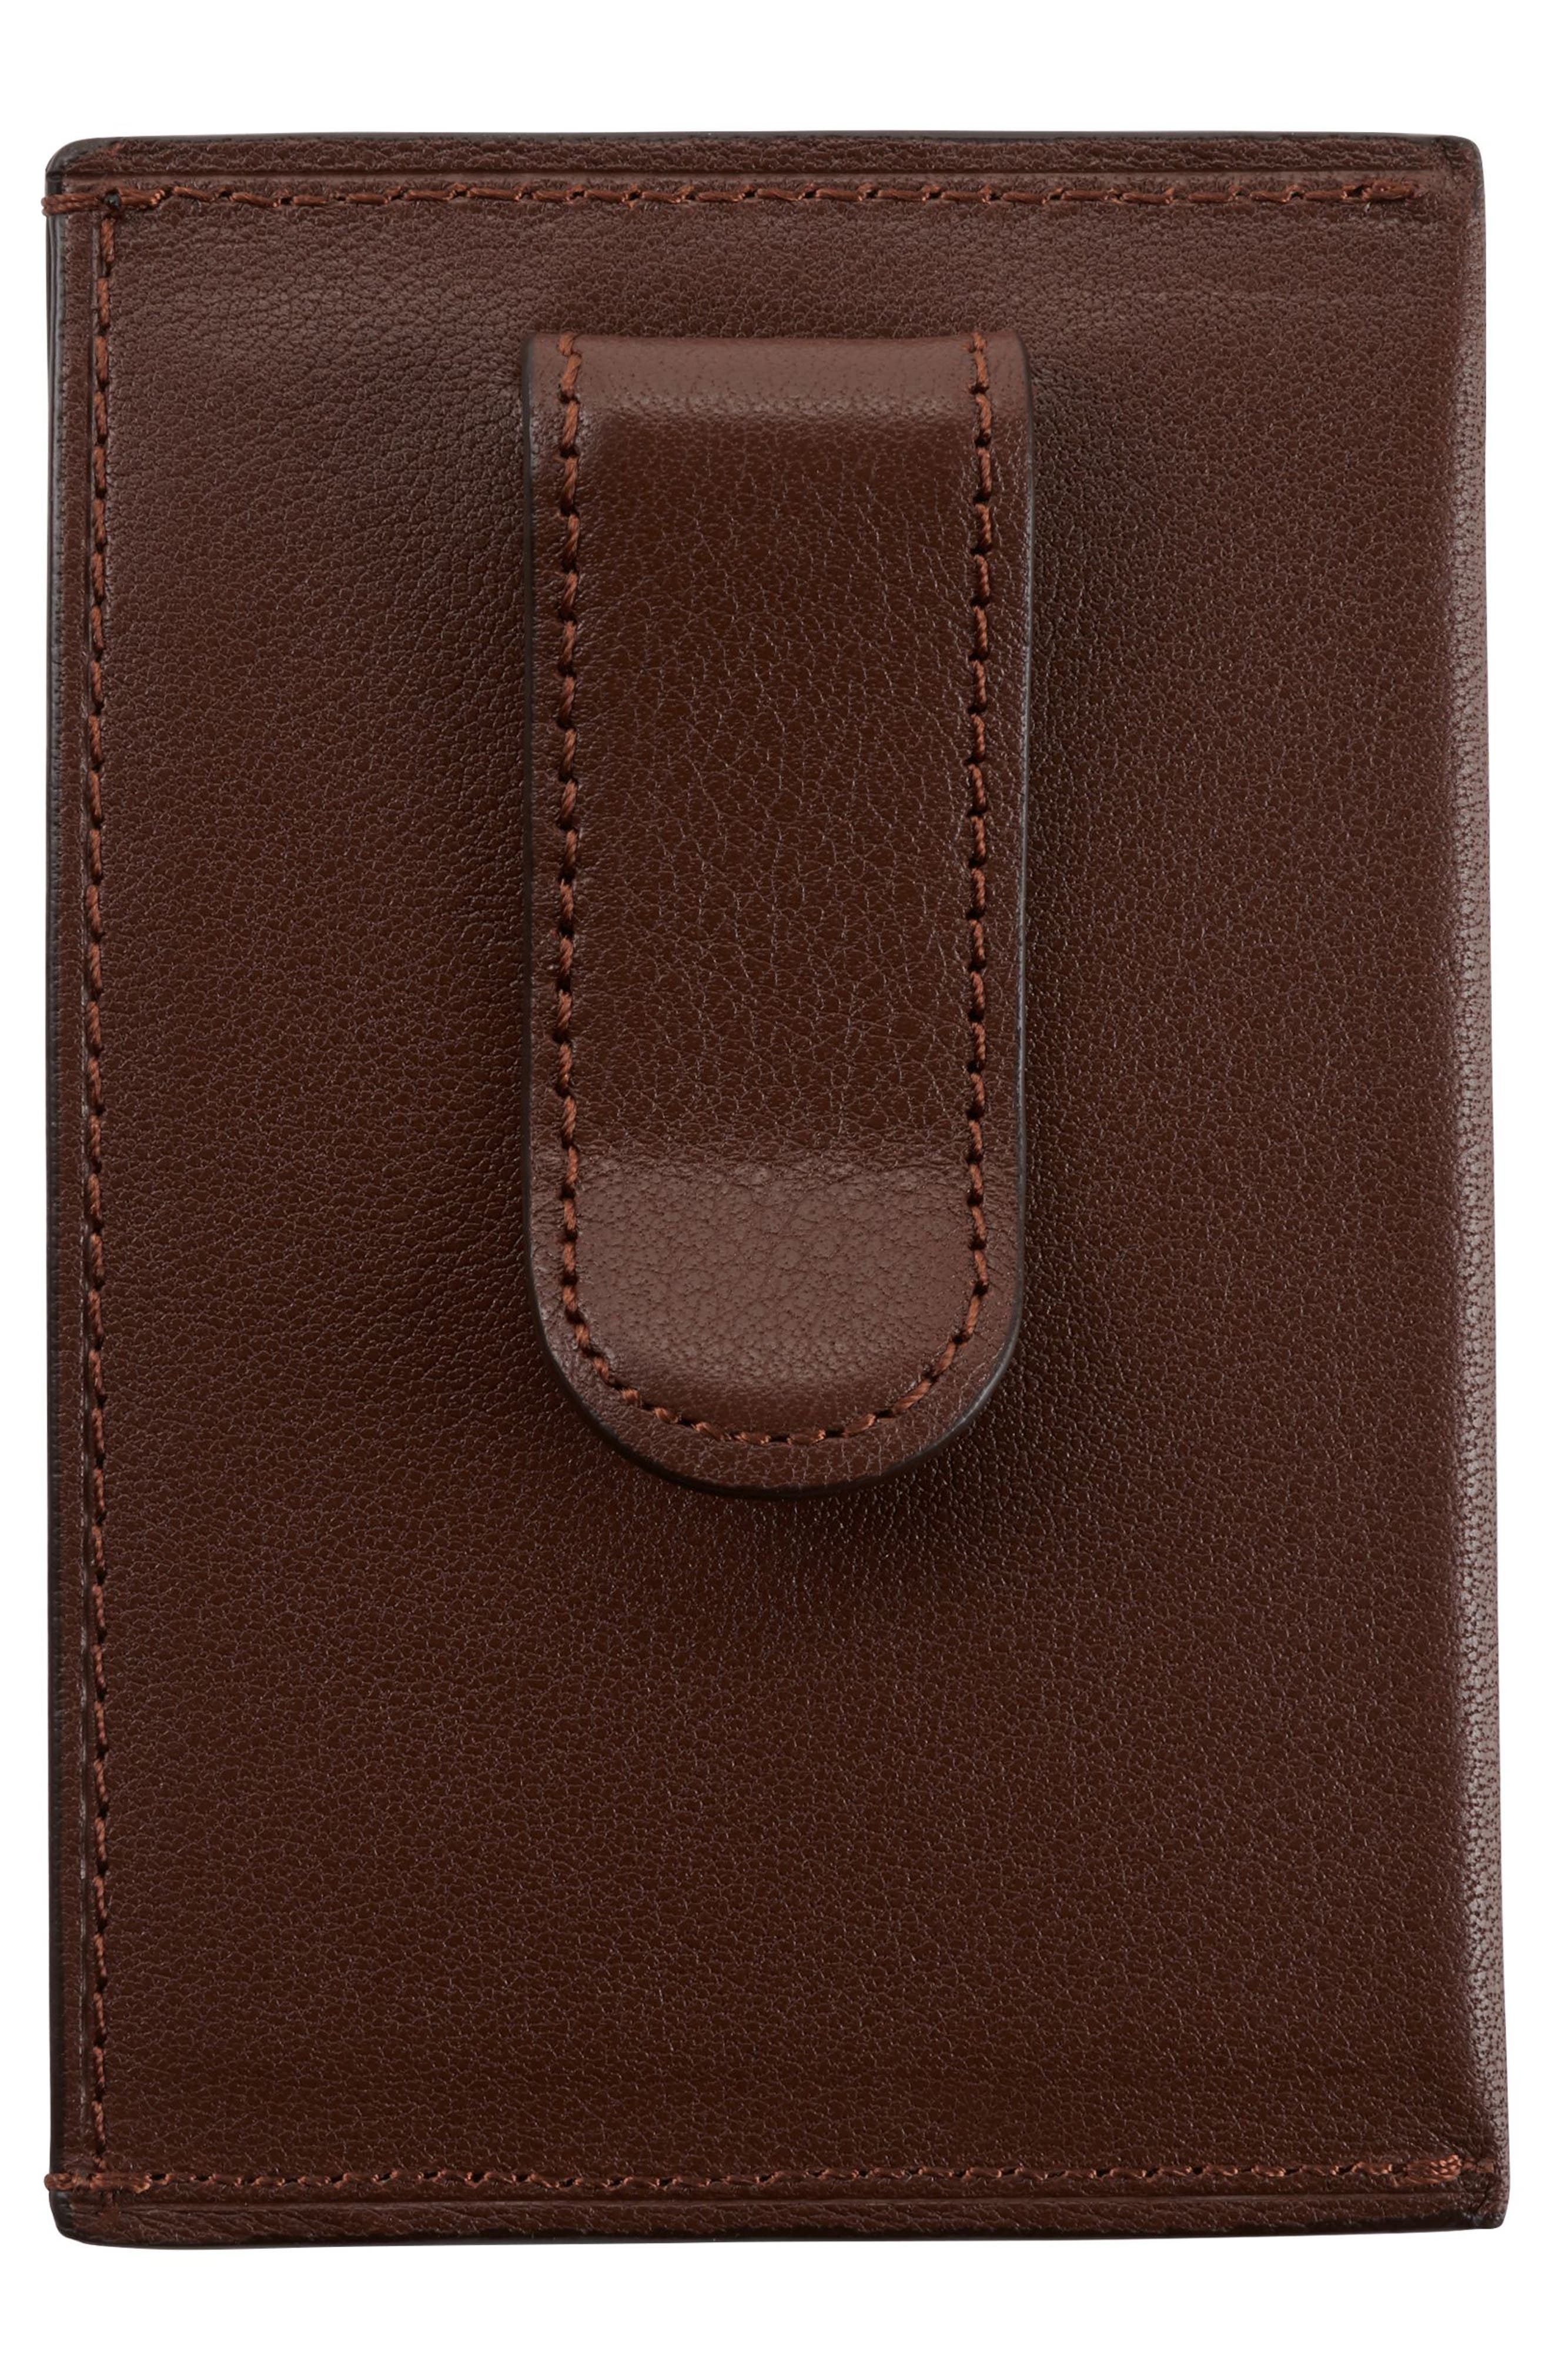 Leather Money Clip Card Case,                             Alternate thumbnail 2, color,                             Brown Textured